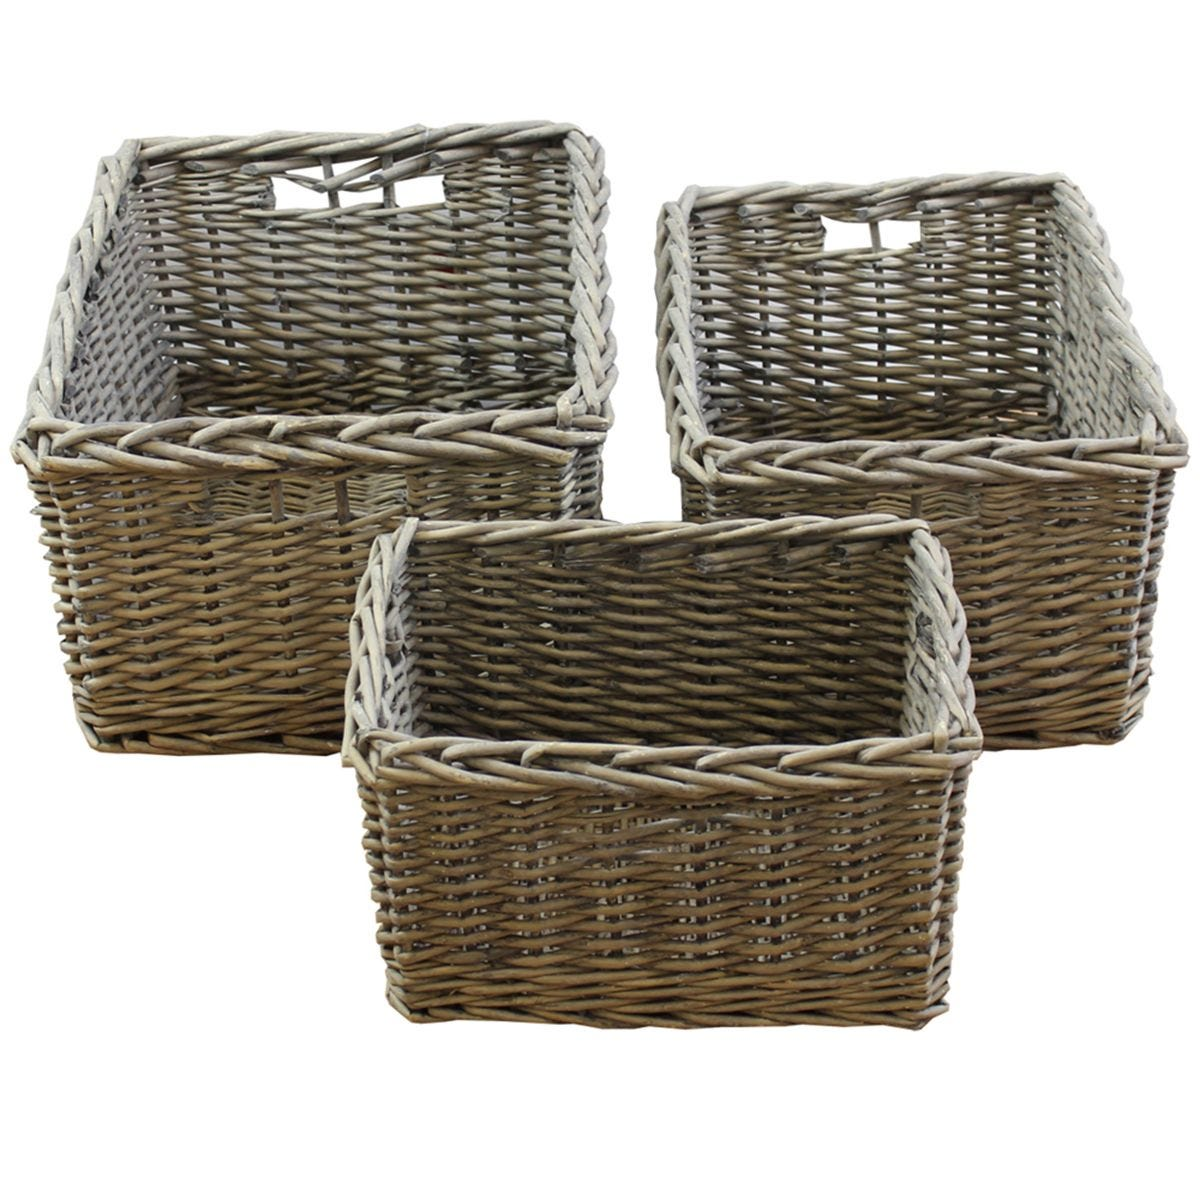 JVL Chunky Willow Rectangular Set of 3 Storage Baskets with Handles Home Kitchen